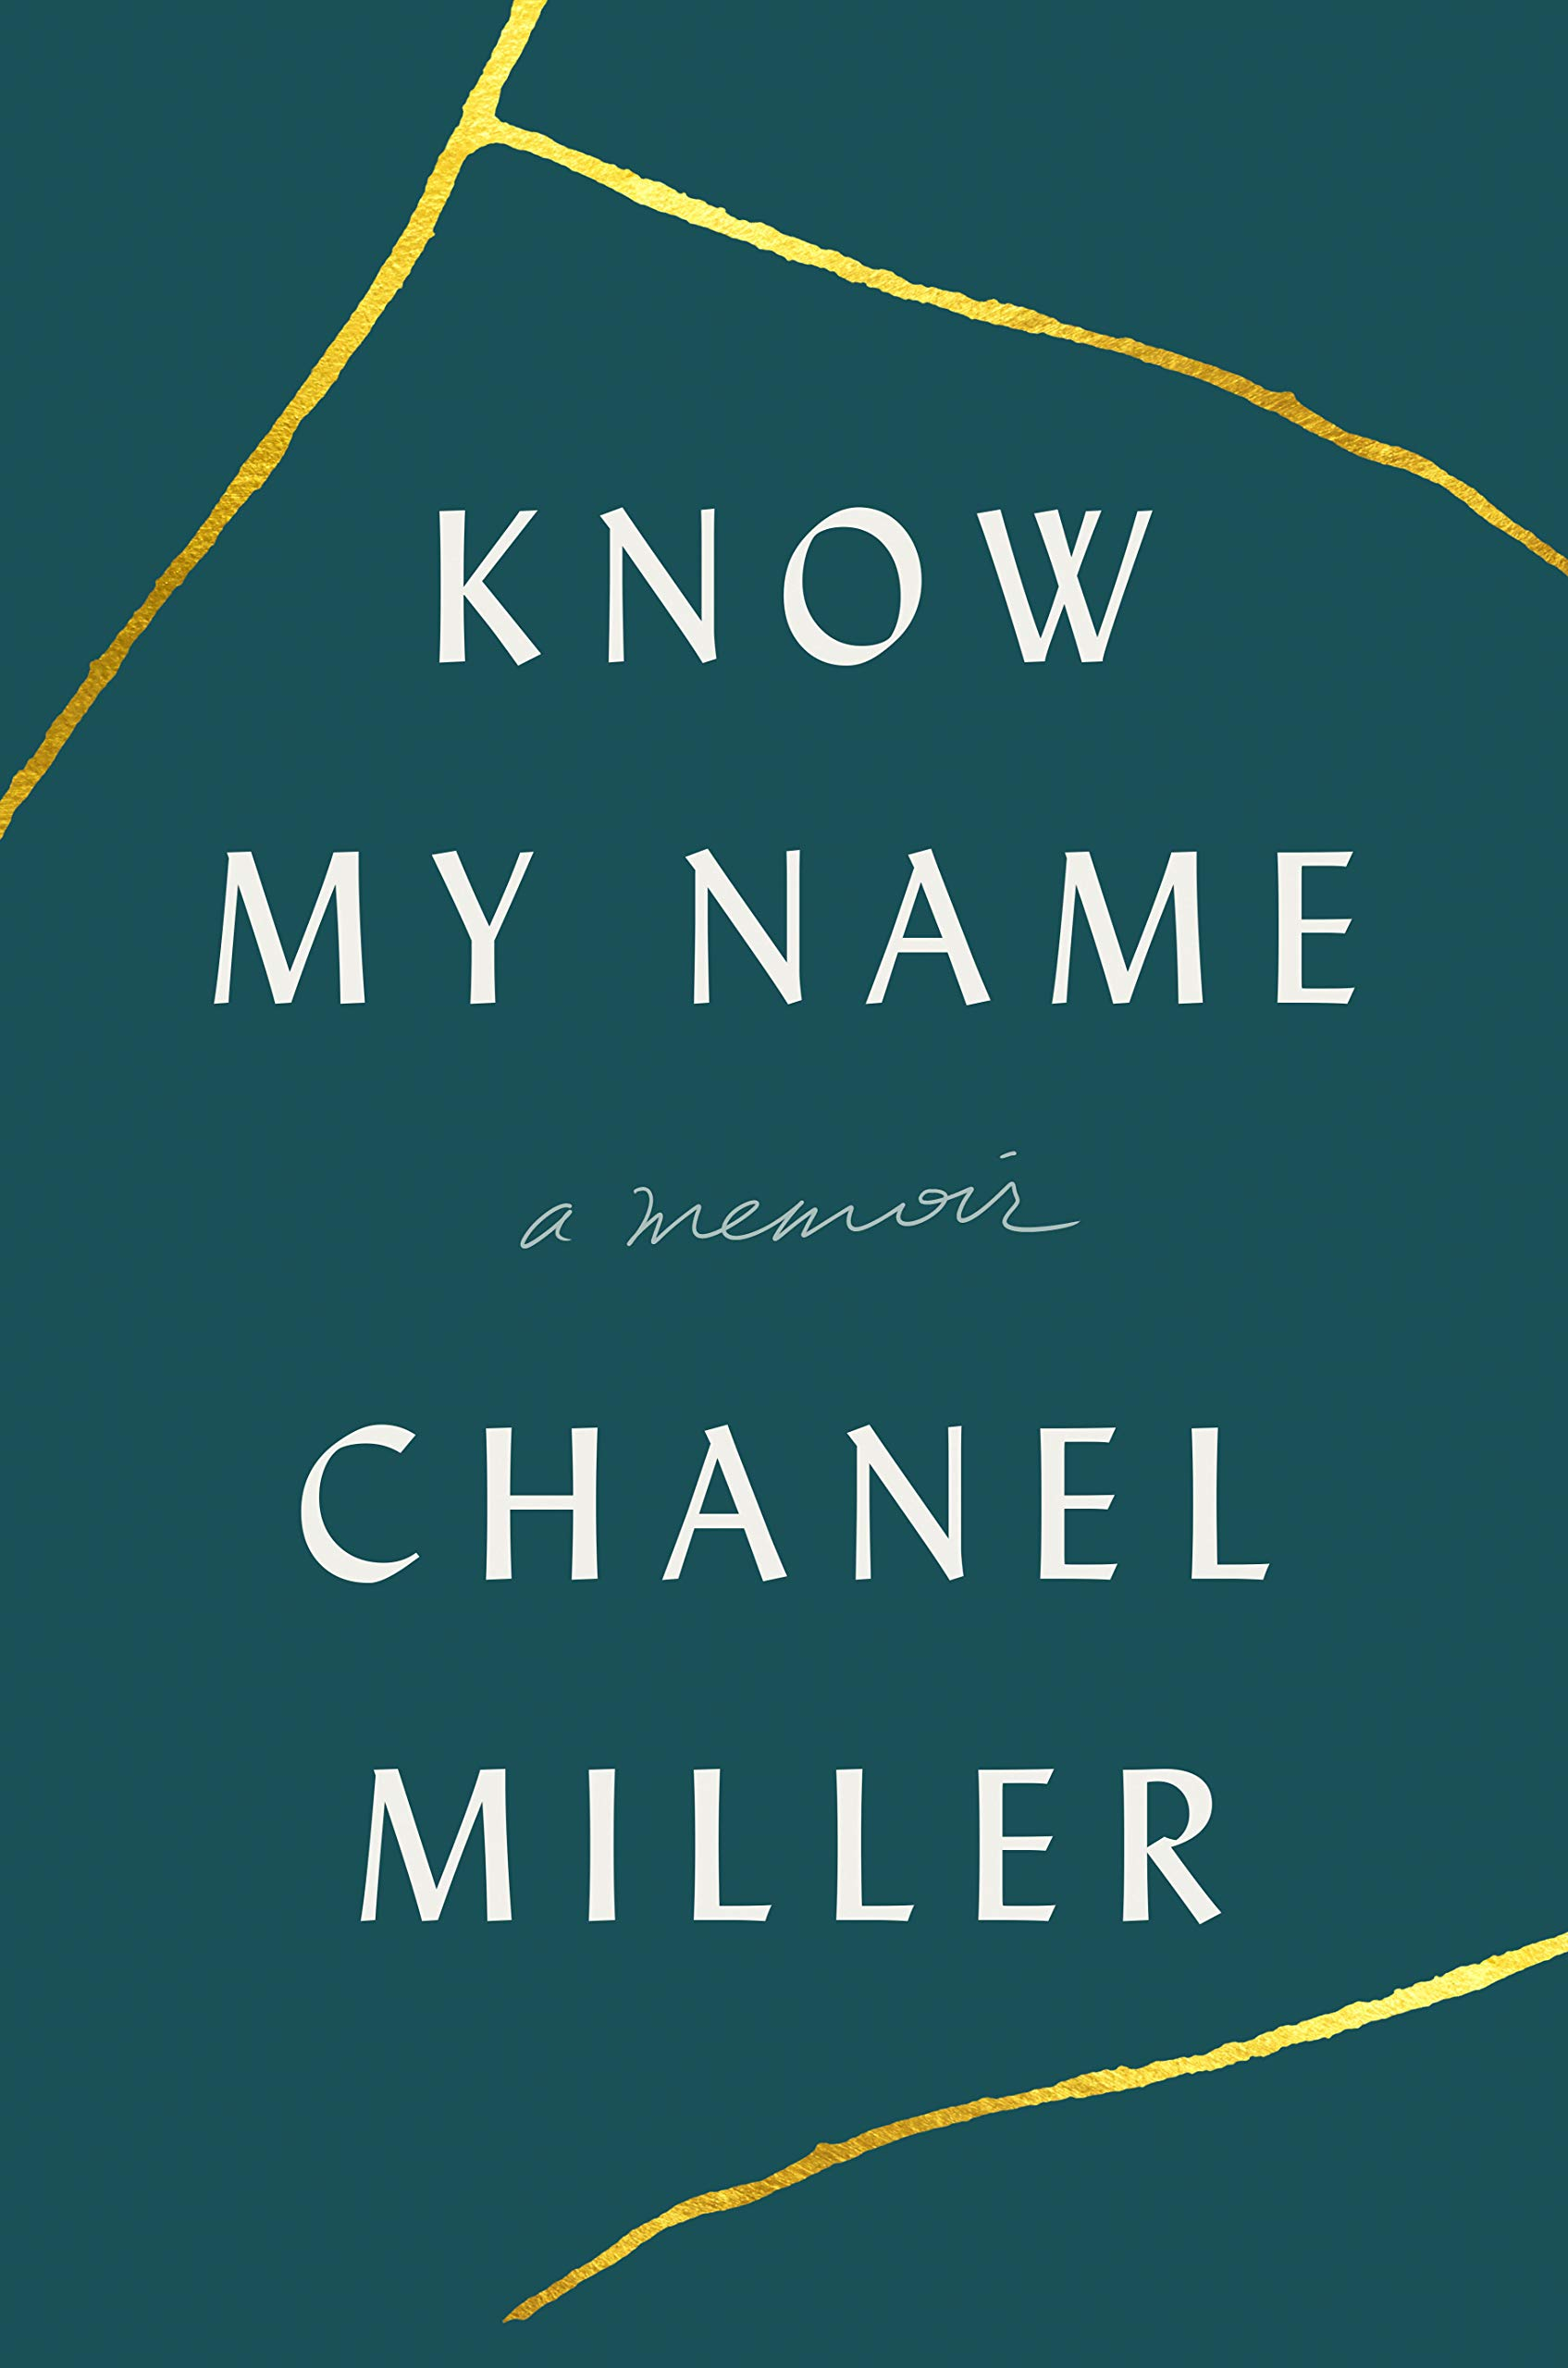 Know My Name: A Memoir: Miller, Chanel: 9780735223707: Books - Amazon.ca